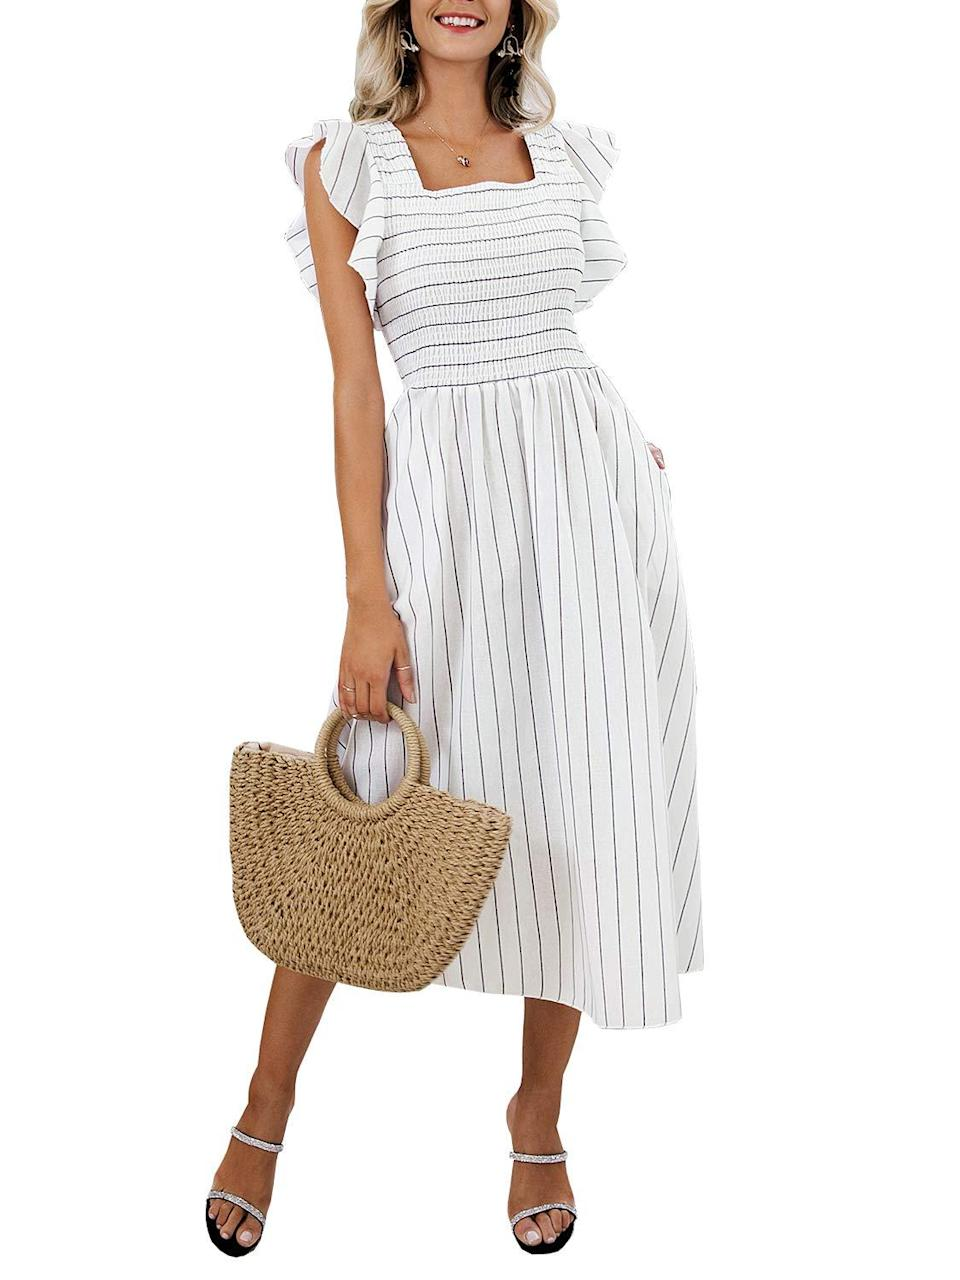 """<h2>Amazon Striped Linen Midi Dress</h2><br>Shopping writer, Chichi Offor, unearthed the <a href=""""https://www.refinery29.com/en-us/cheap-summer-dresses-amazon"""" rel=""""nofollow noopener"""" target=""""_blank"""" data-ylk=""""slk:best dresses on Amazon for cheap"""" class=""""link rapid-noclick-resp"""">best dresses on Amazon for cheap</a> and this <a href=""""https://www.refinery29.com/en-us/the-nap-dress-best-styles"""" rel=""""nofollow noopener"""" target=""""_blank"""" data-ylk=""""slk:nap-dress-esque style"""" class=""""link rapid-noclick-resp"""">nap-dress-esque style</a> became a fast favorite. With a delightful $20 price tag and classic blue to grey or white-striped colorways, the glowing reviewer praise flows freely. <br><br>As one pleased owner of the frock attests, """"This summer dress is a must-have! I must have worn it at least once a week all summer long. It's so comfortable and the material is breathable.. even on humid days. The pockets are ideal and the flutter cap sleeves couldn't be cuter. I ordered a large for just a little better wiggle room and glad I did because it fits perfectly. I wore it with white sneakers, sandals, and espadrilles so it's very versatile. Looking forward to pulling it out of the closet next summer.""""<br><br><em>Shop <strong><a href=""""https://amzn.to/3fHExdm"""" rel=""""nofollow noopener"""" target=""""_blank"""" data-ylk=""""slk:Amazon"""" class=""""link rapid-noclick-resp"""">Amazon</a></strong></em><br><br><strong>Miessial</strong> Striped Linen Midi Dress, $, available at <a href=""""https://amzn.to/3eYB3l1"""" rel=""""nofollow noopener"""" target=""""_blank"""" data-ylk=""""slk:Amazon"""" class=""""link rapid-noclick-resp"""">Amazon</a>"""